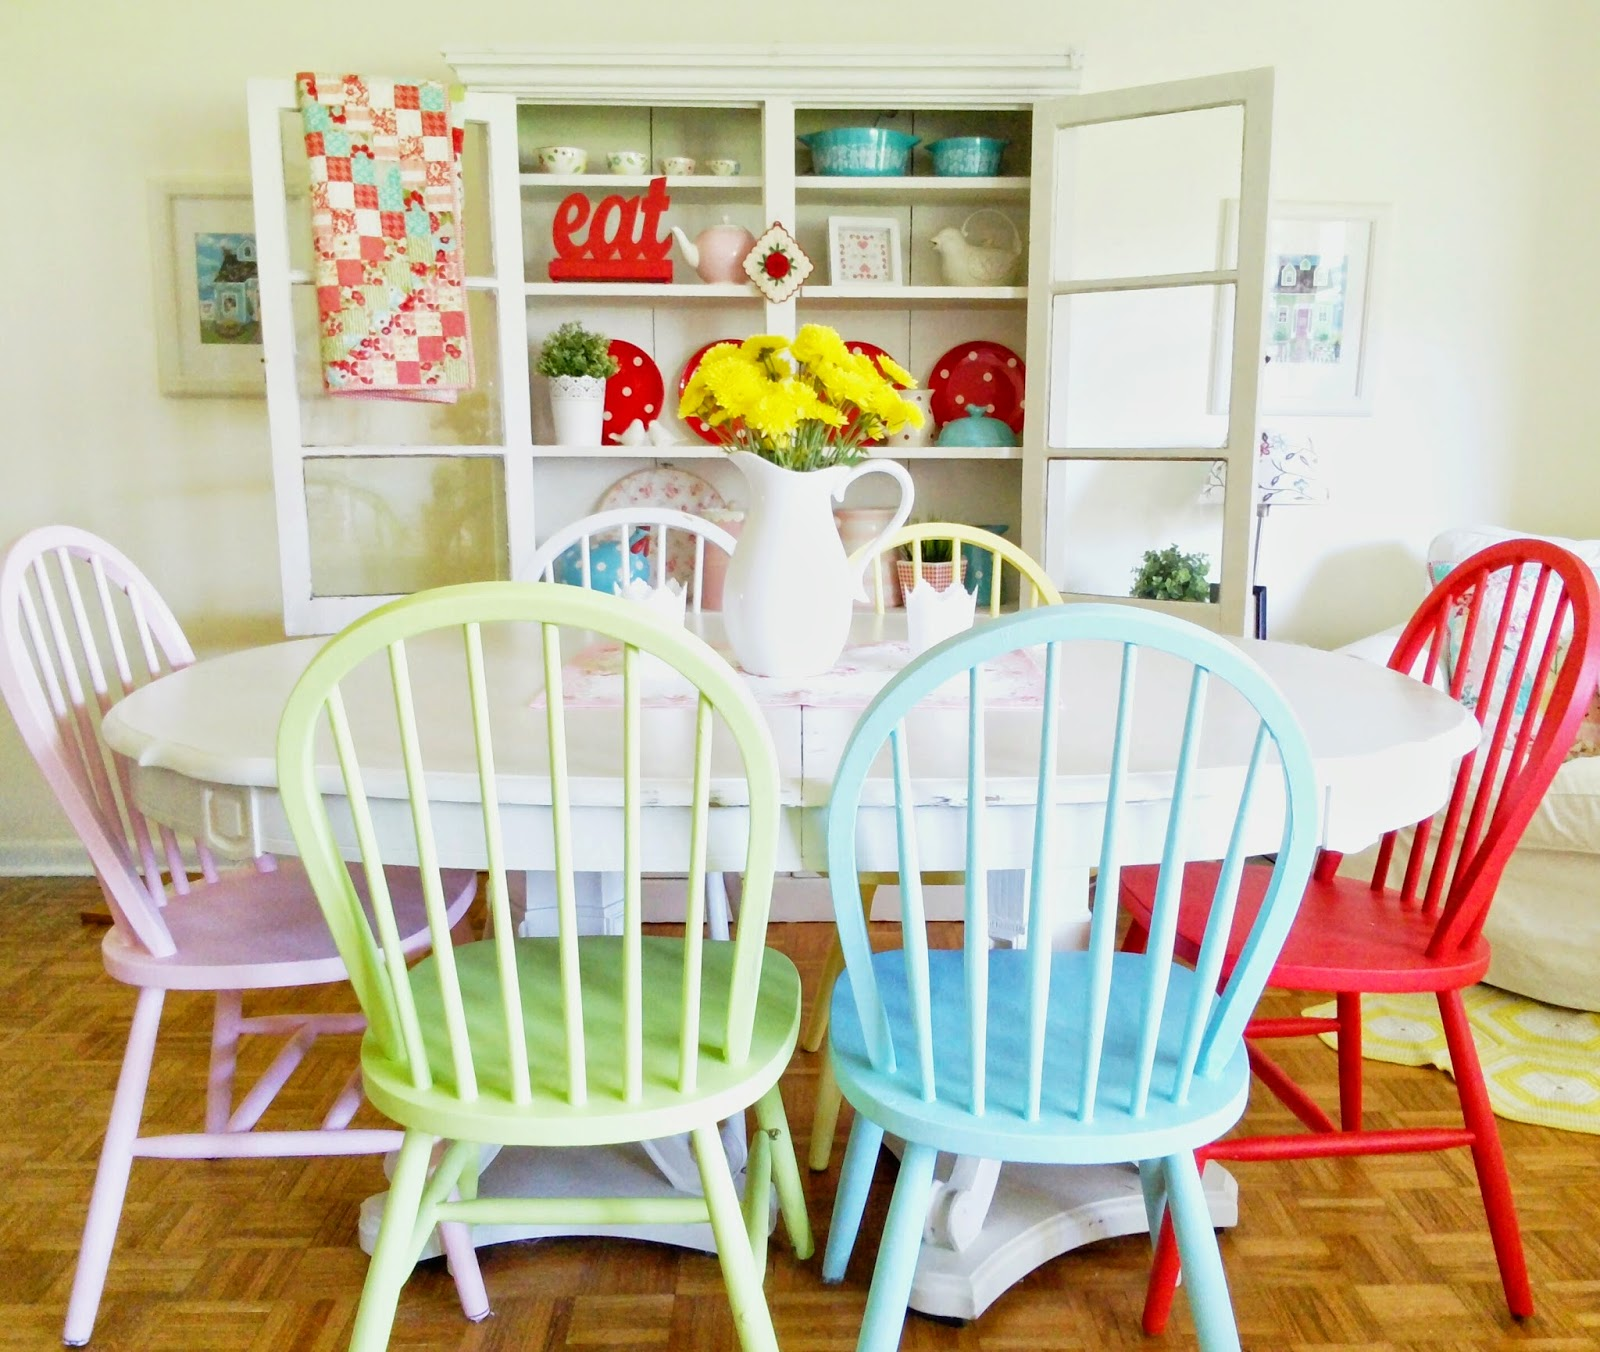 hopscotch lane Colorful Dining Room Chairs : tmpIMG2014051913353011440034433 from hopscotchlane.blogspot.com size 1600 x 1352 jpeg 330kB